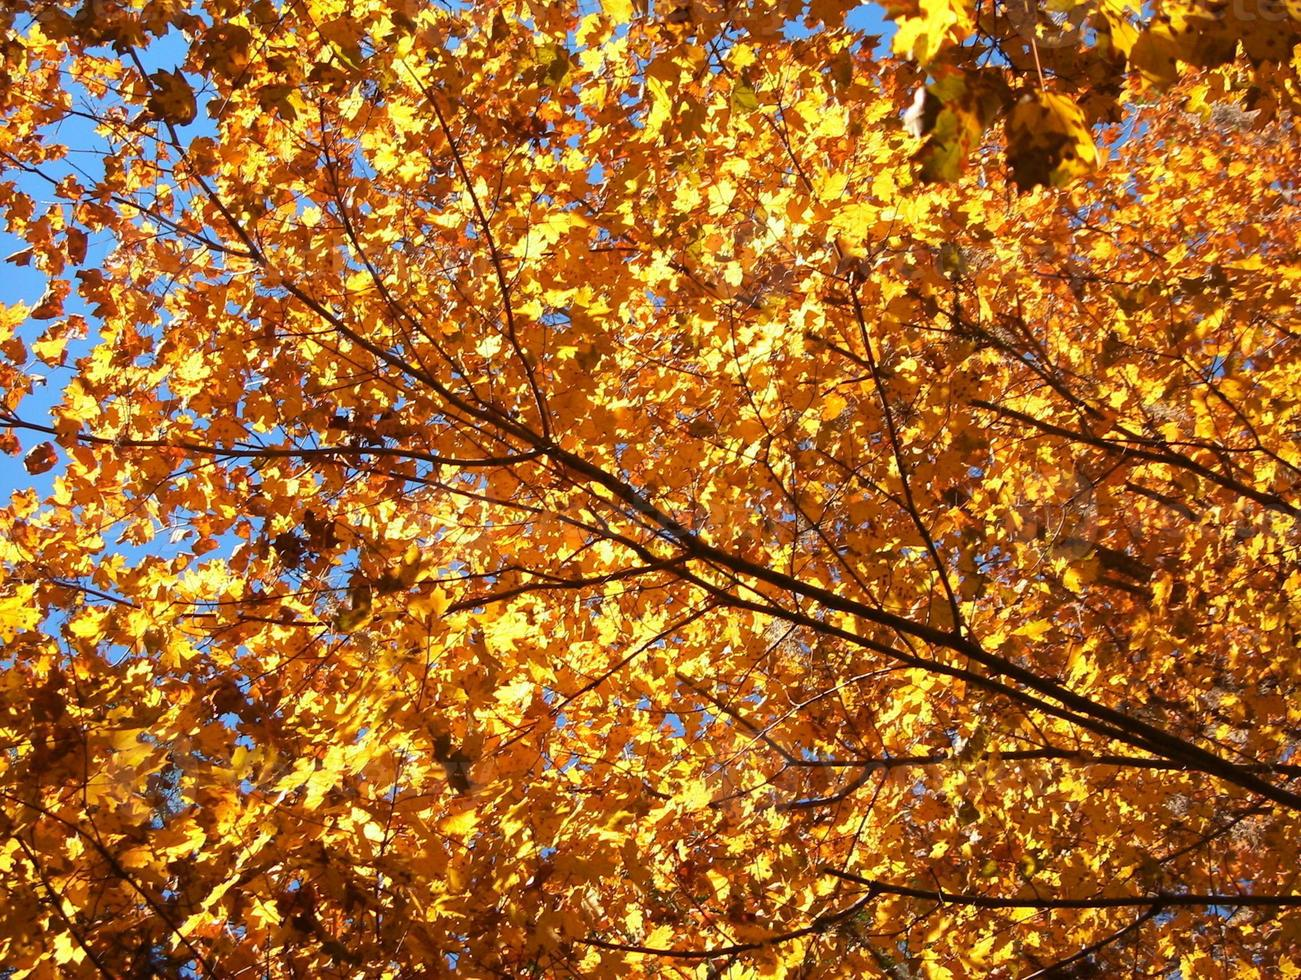 Golden colors in back lit tree canopy photo